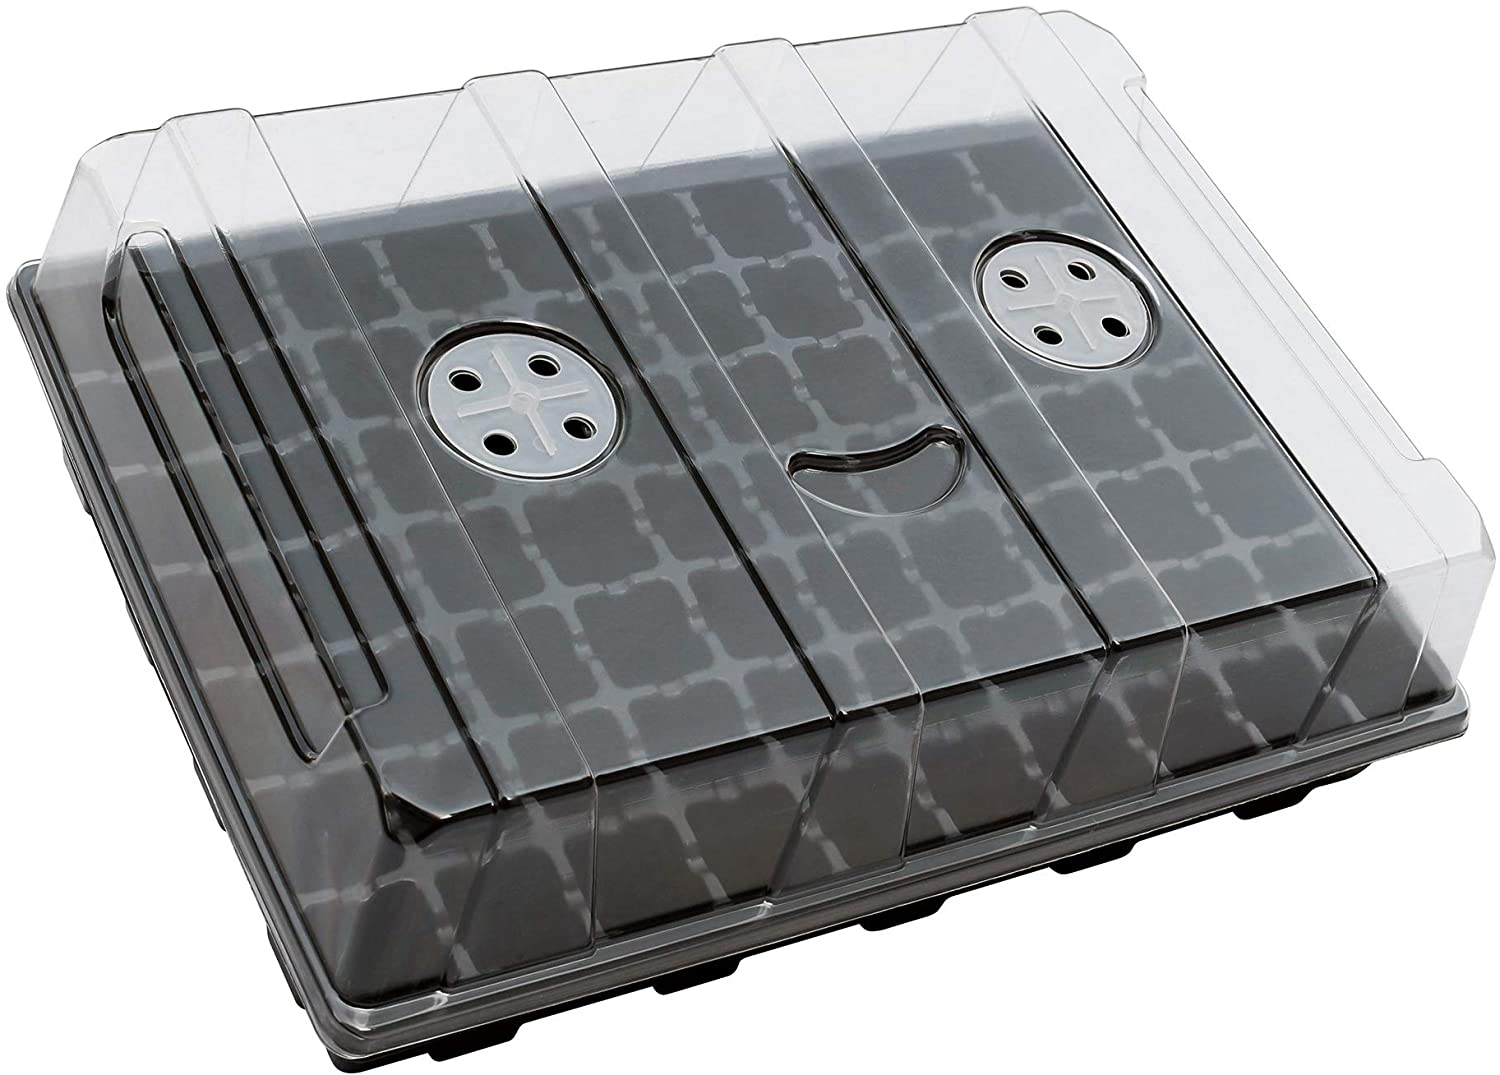 """Gardzen 5-Set Garden Propagator Set, Smiling Face Seed Tray Kits with 350-Cell, Seed Starter Tray with Dome and Base 18"""" x 14"""" (70-Cell Per Tray)"""